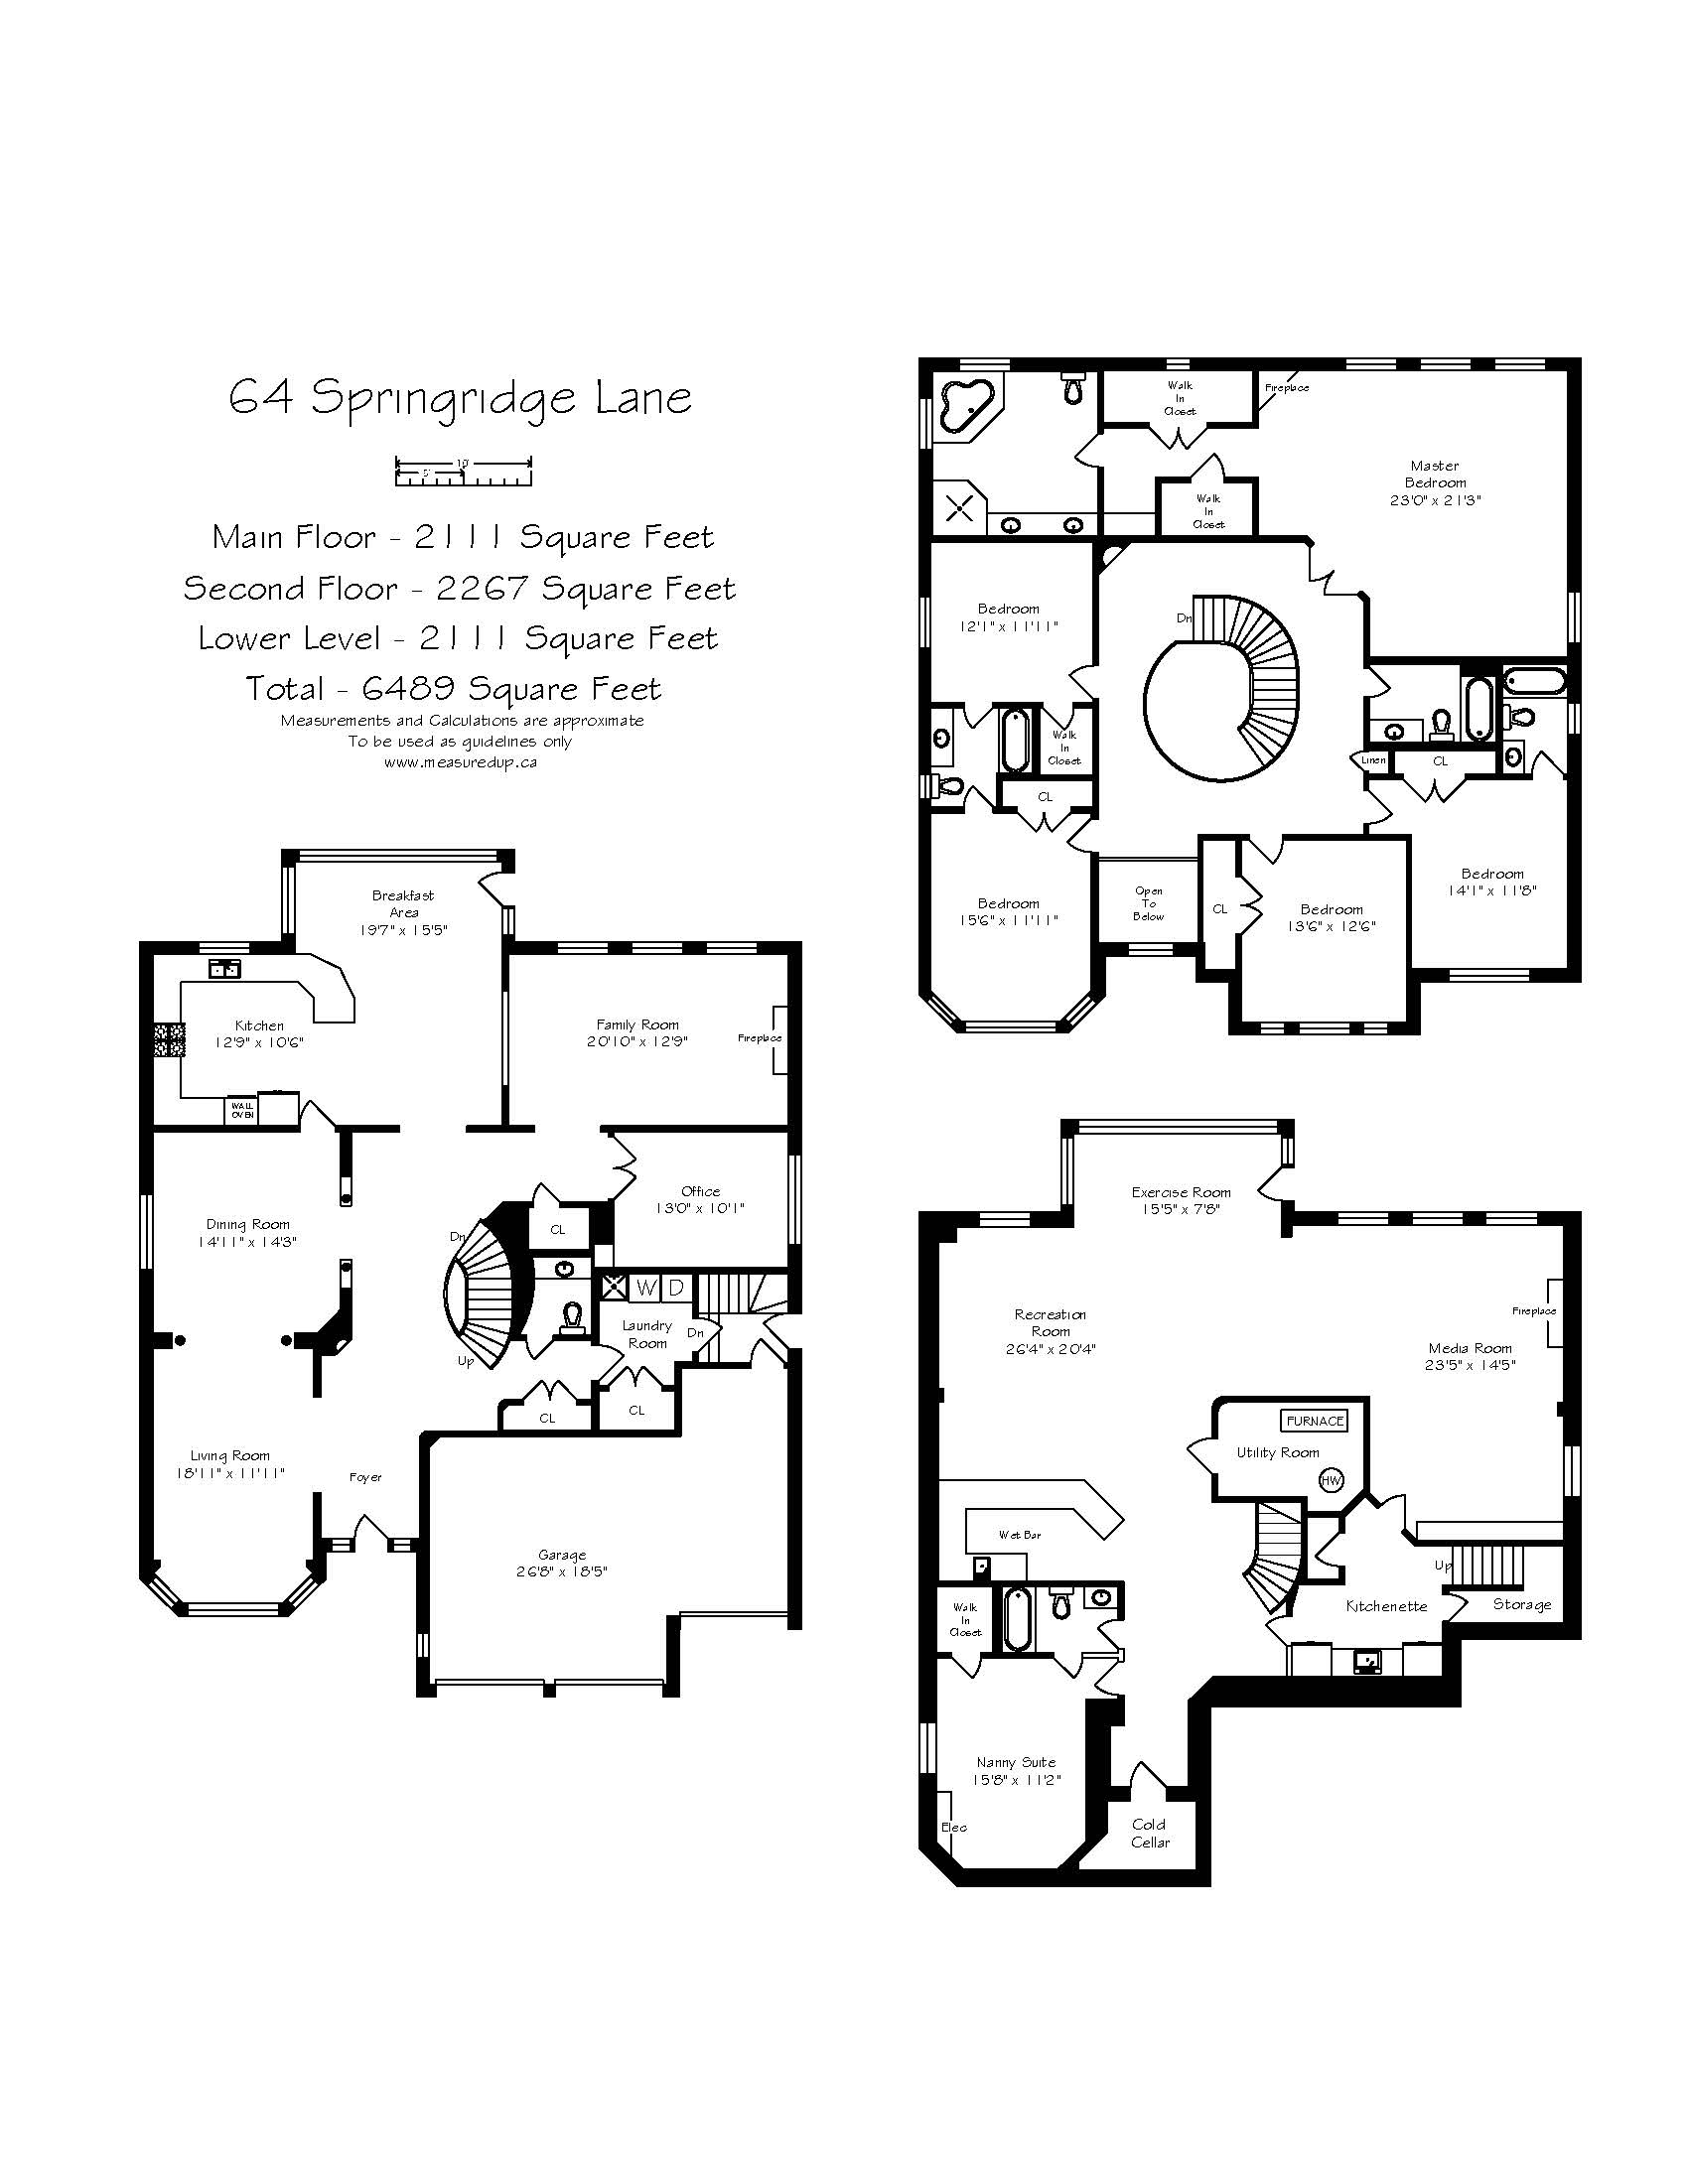 Gta virtual tours floor plans for Virtual tour house plans